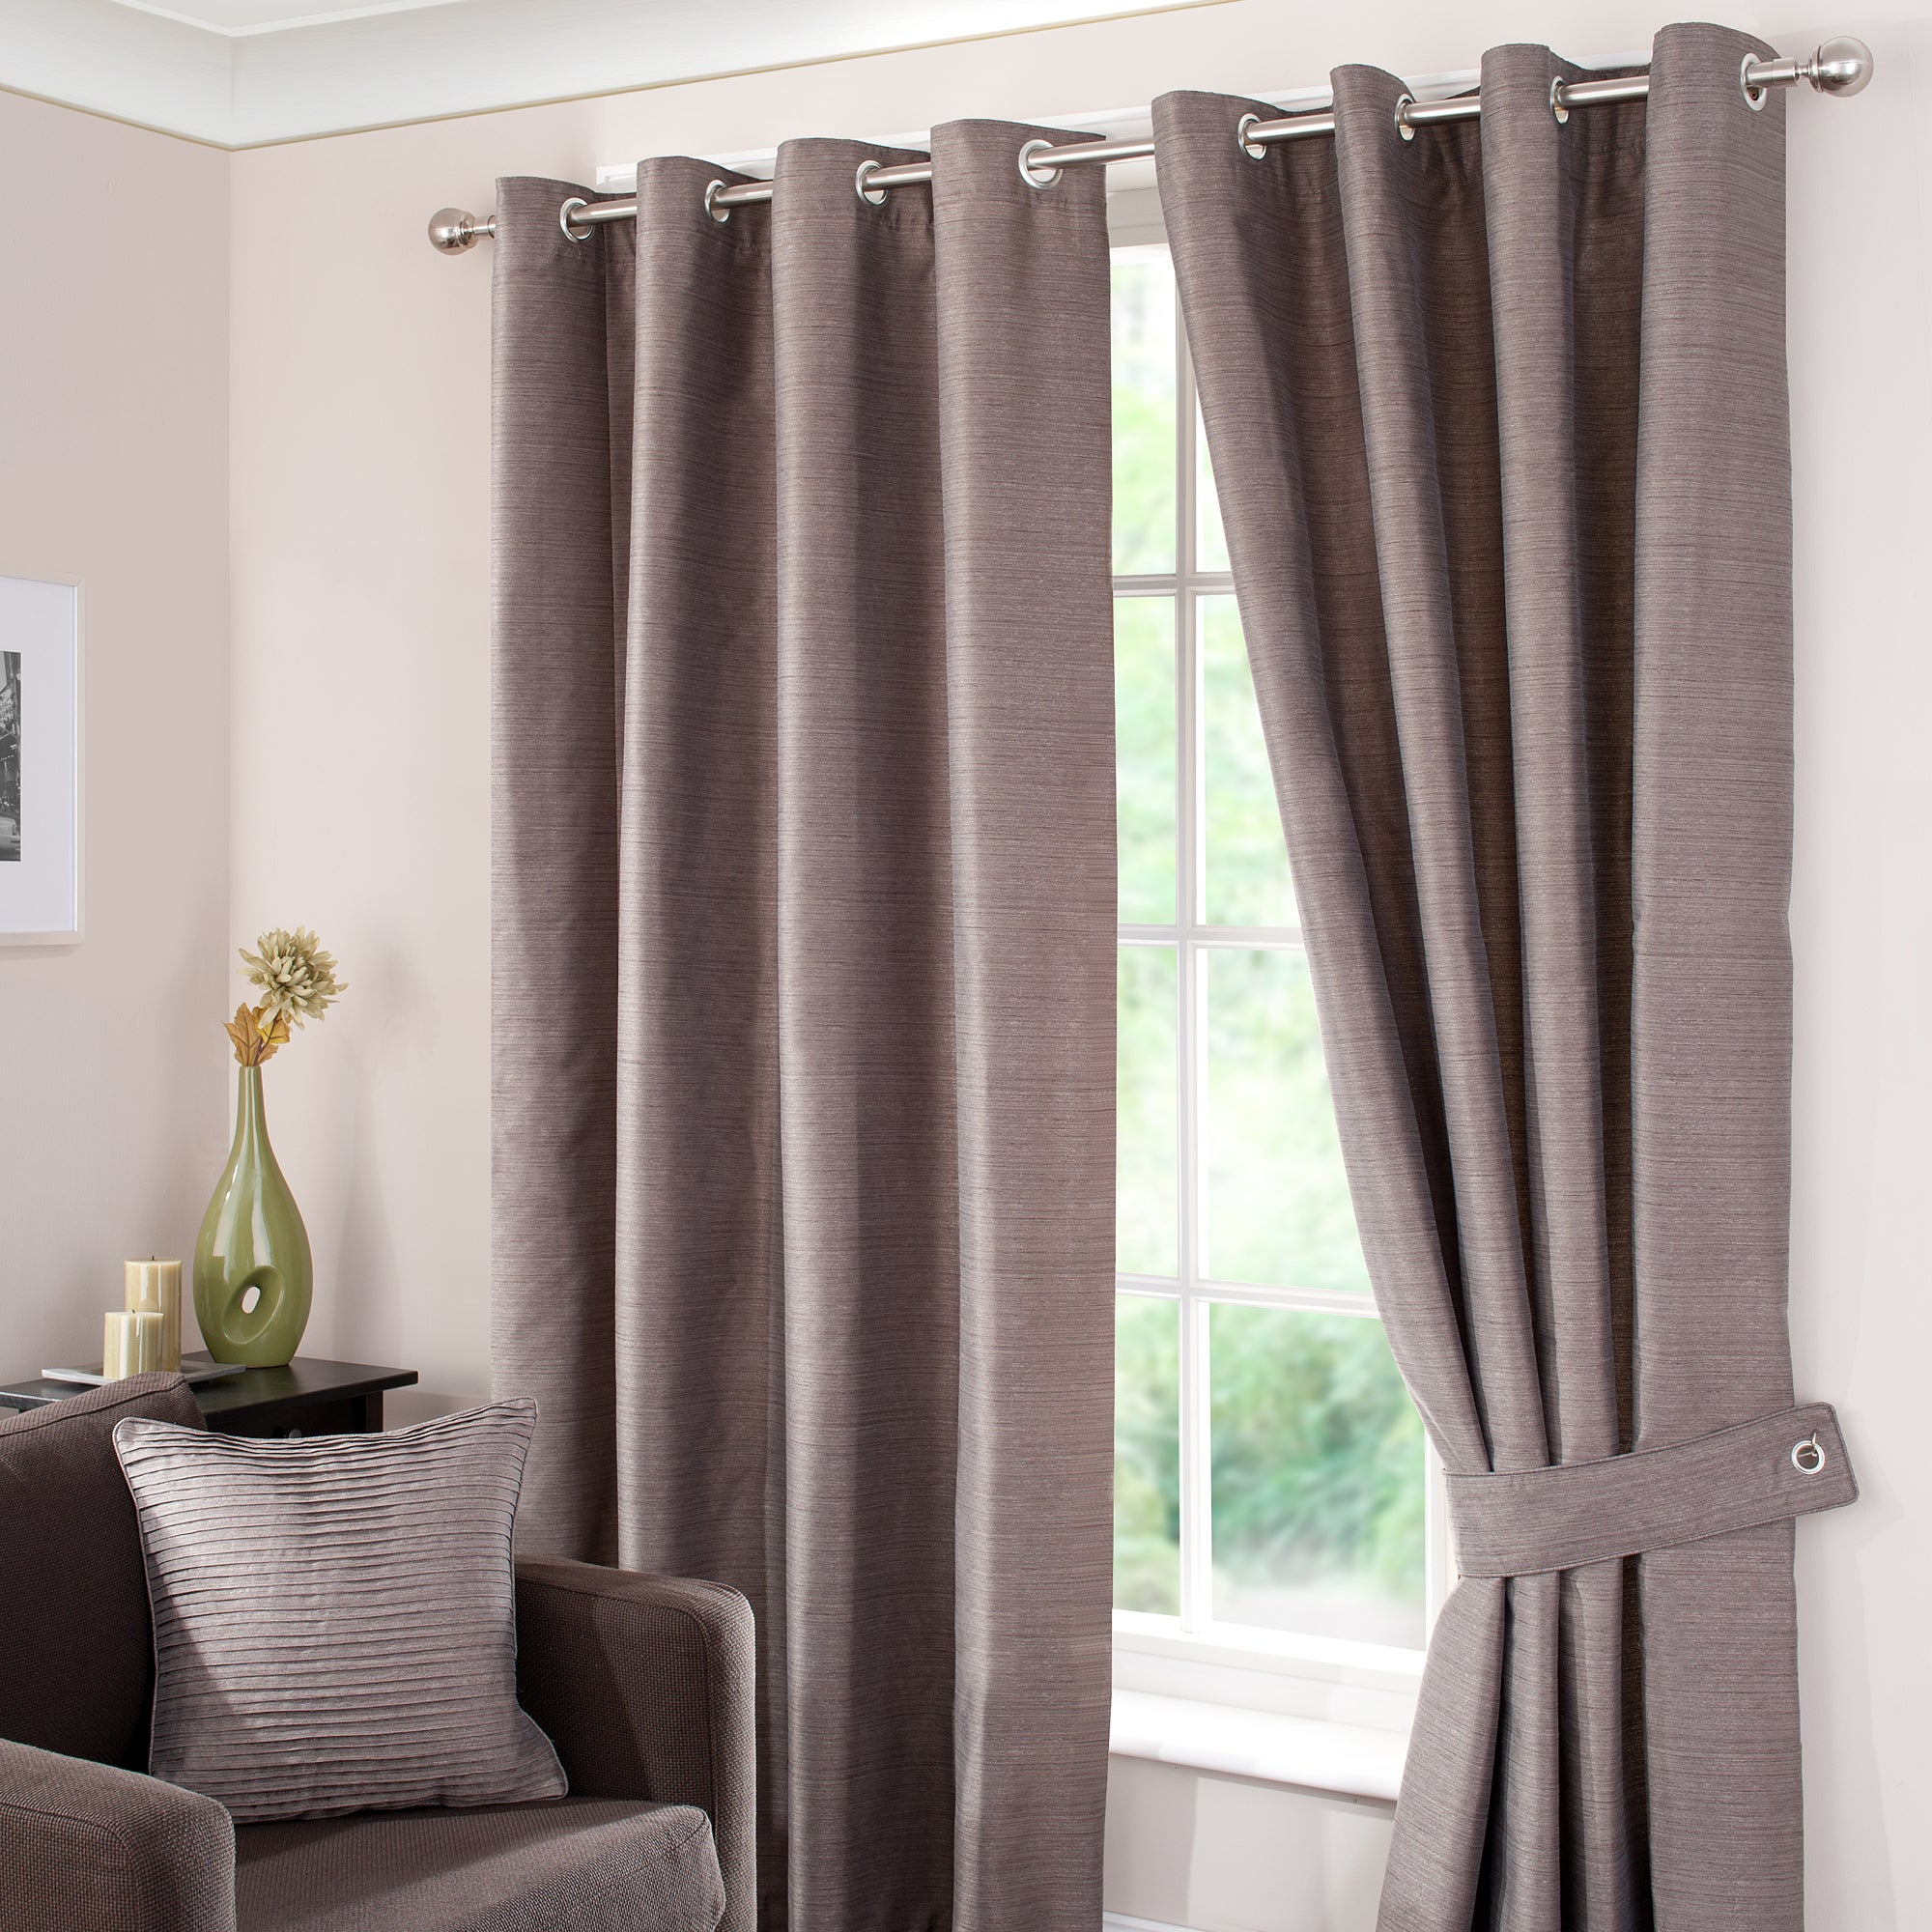 Waters and Noble Slate Opal Lined Eyelet Curtains